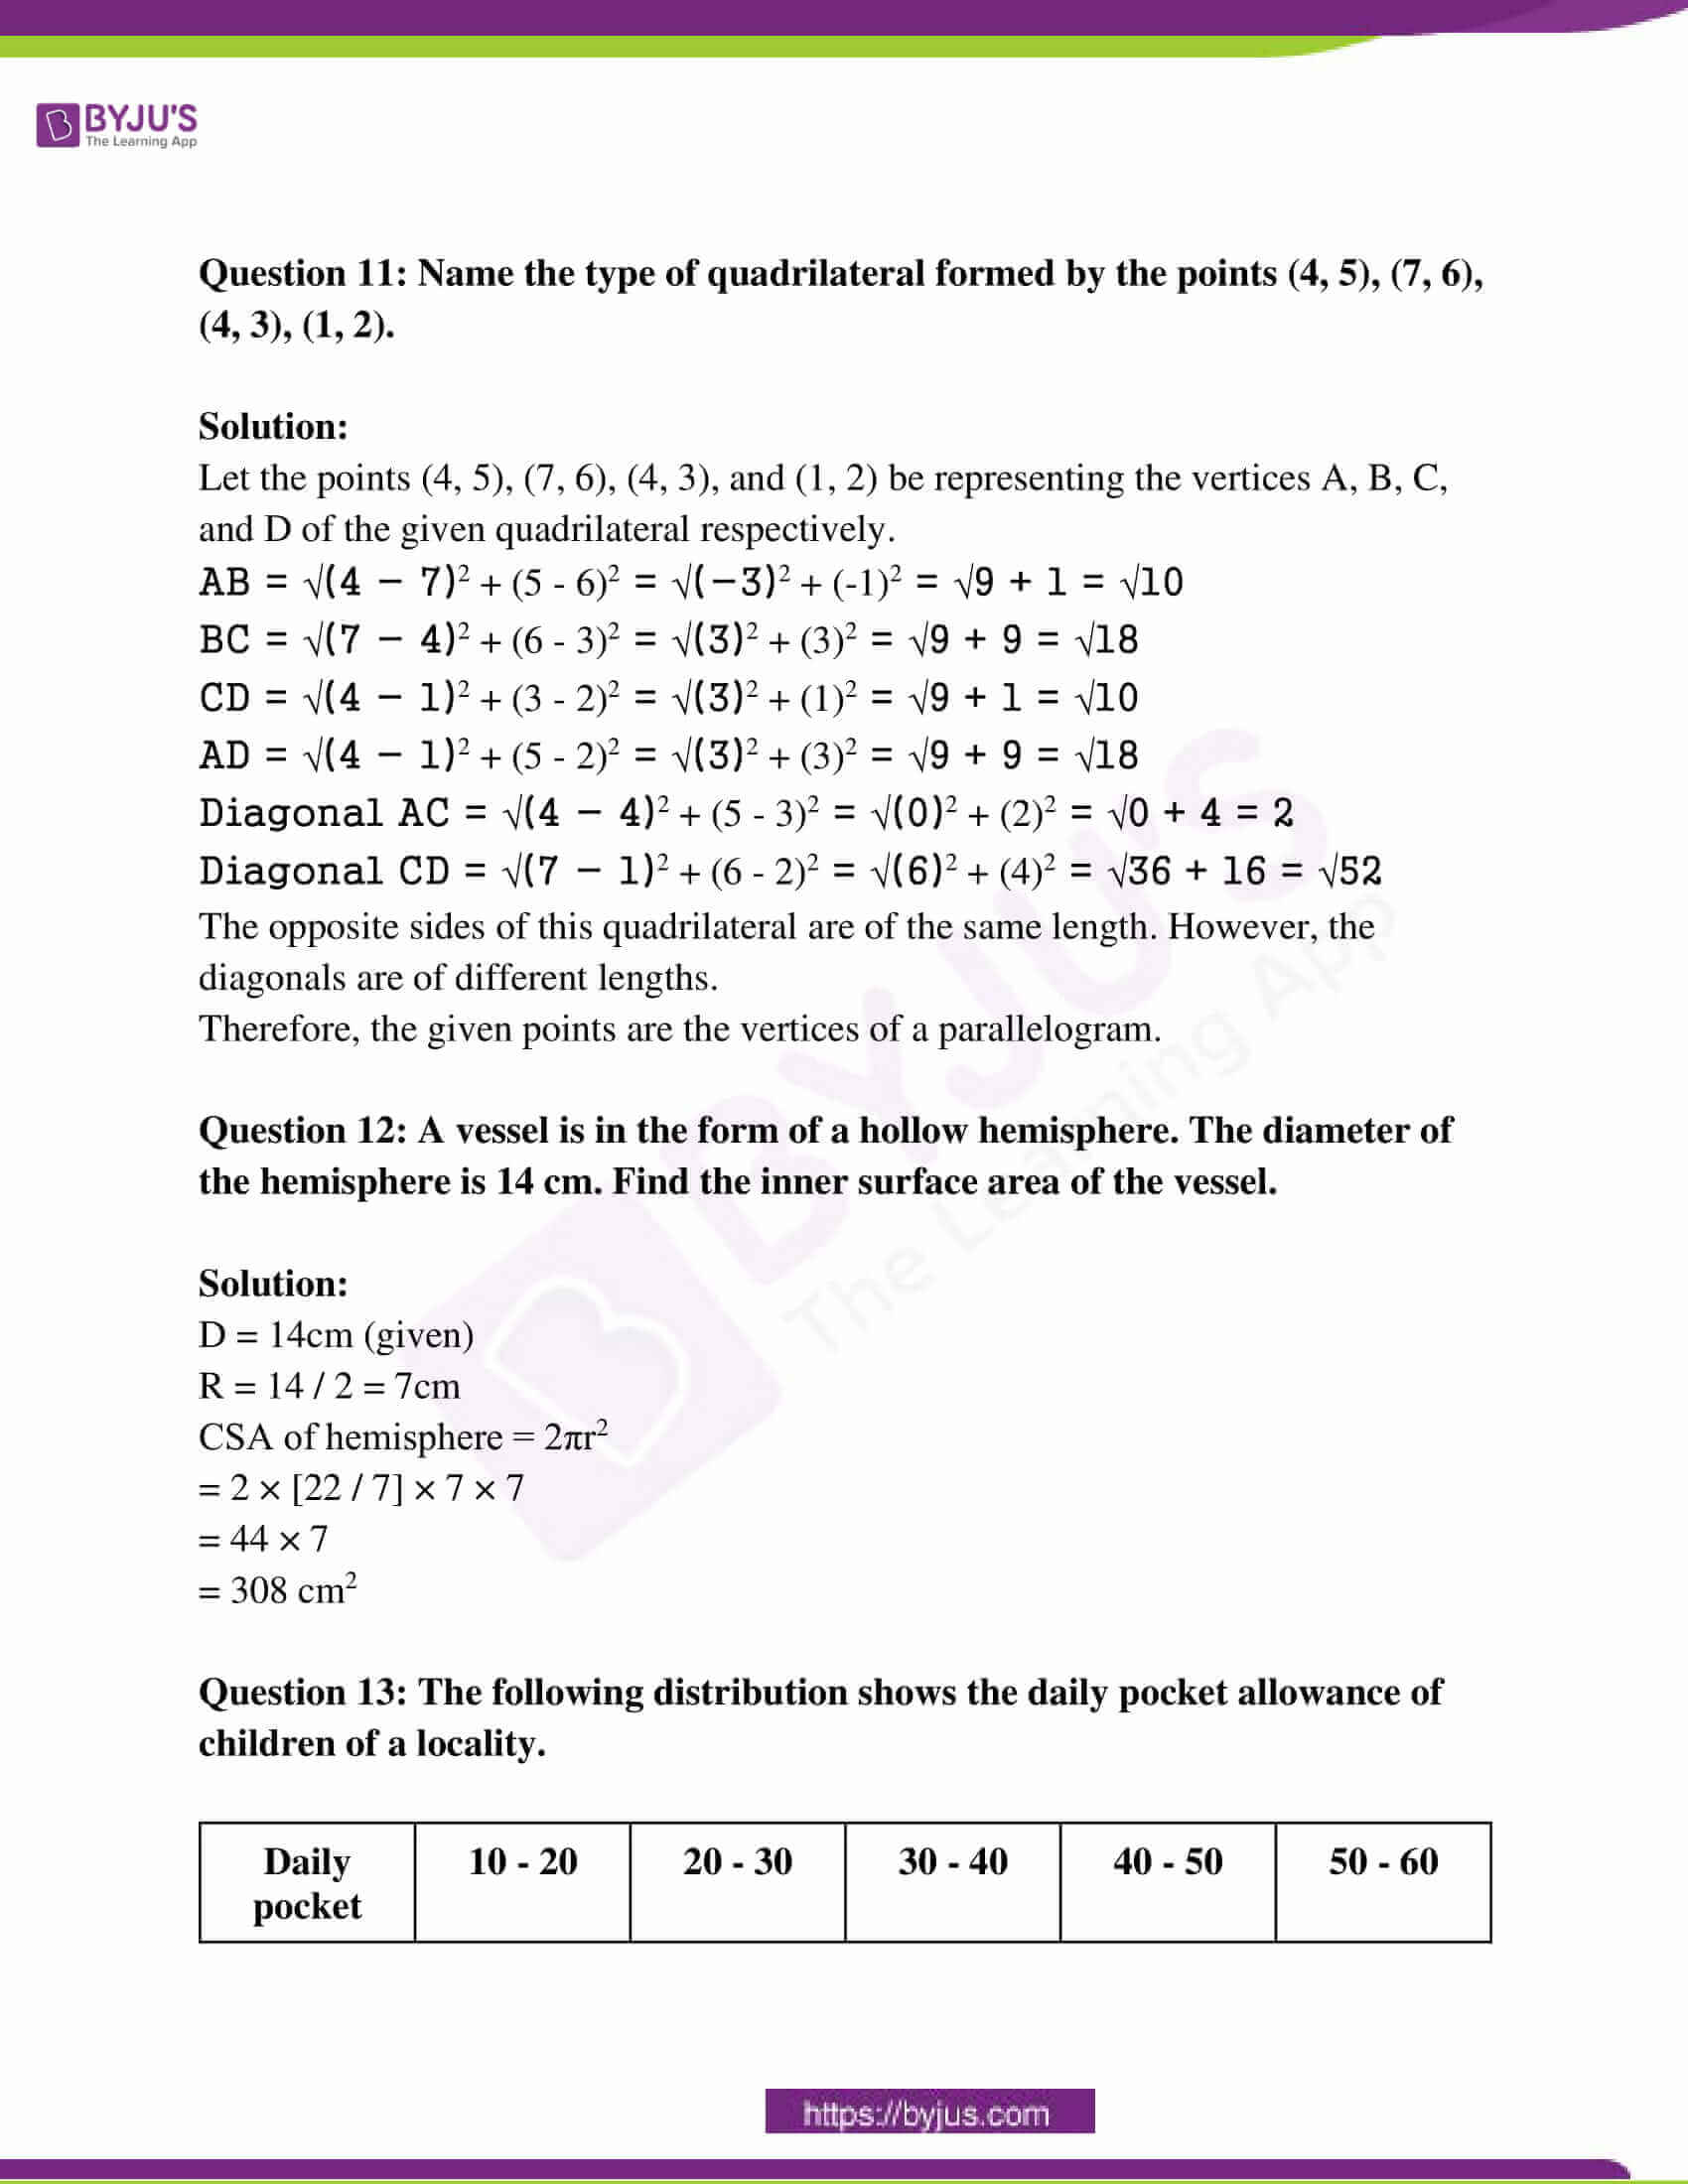 rajasthan board class 10 examination question paper sol march 2017 05